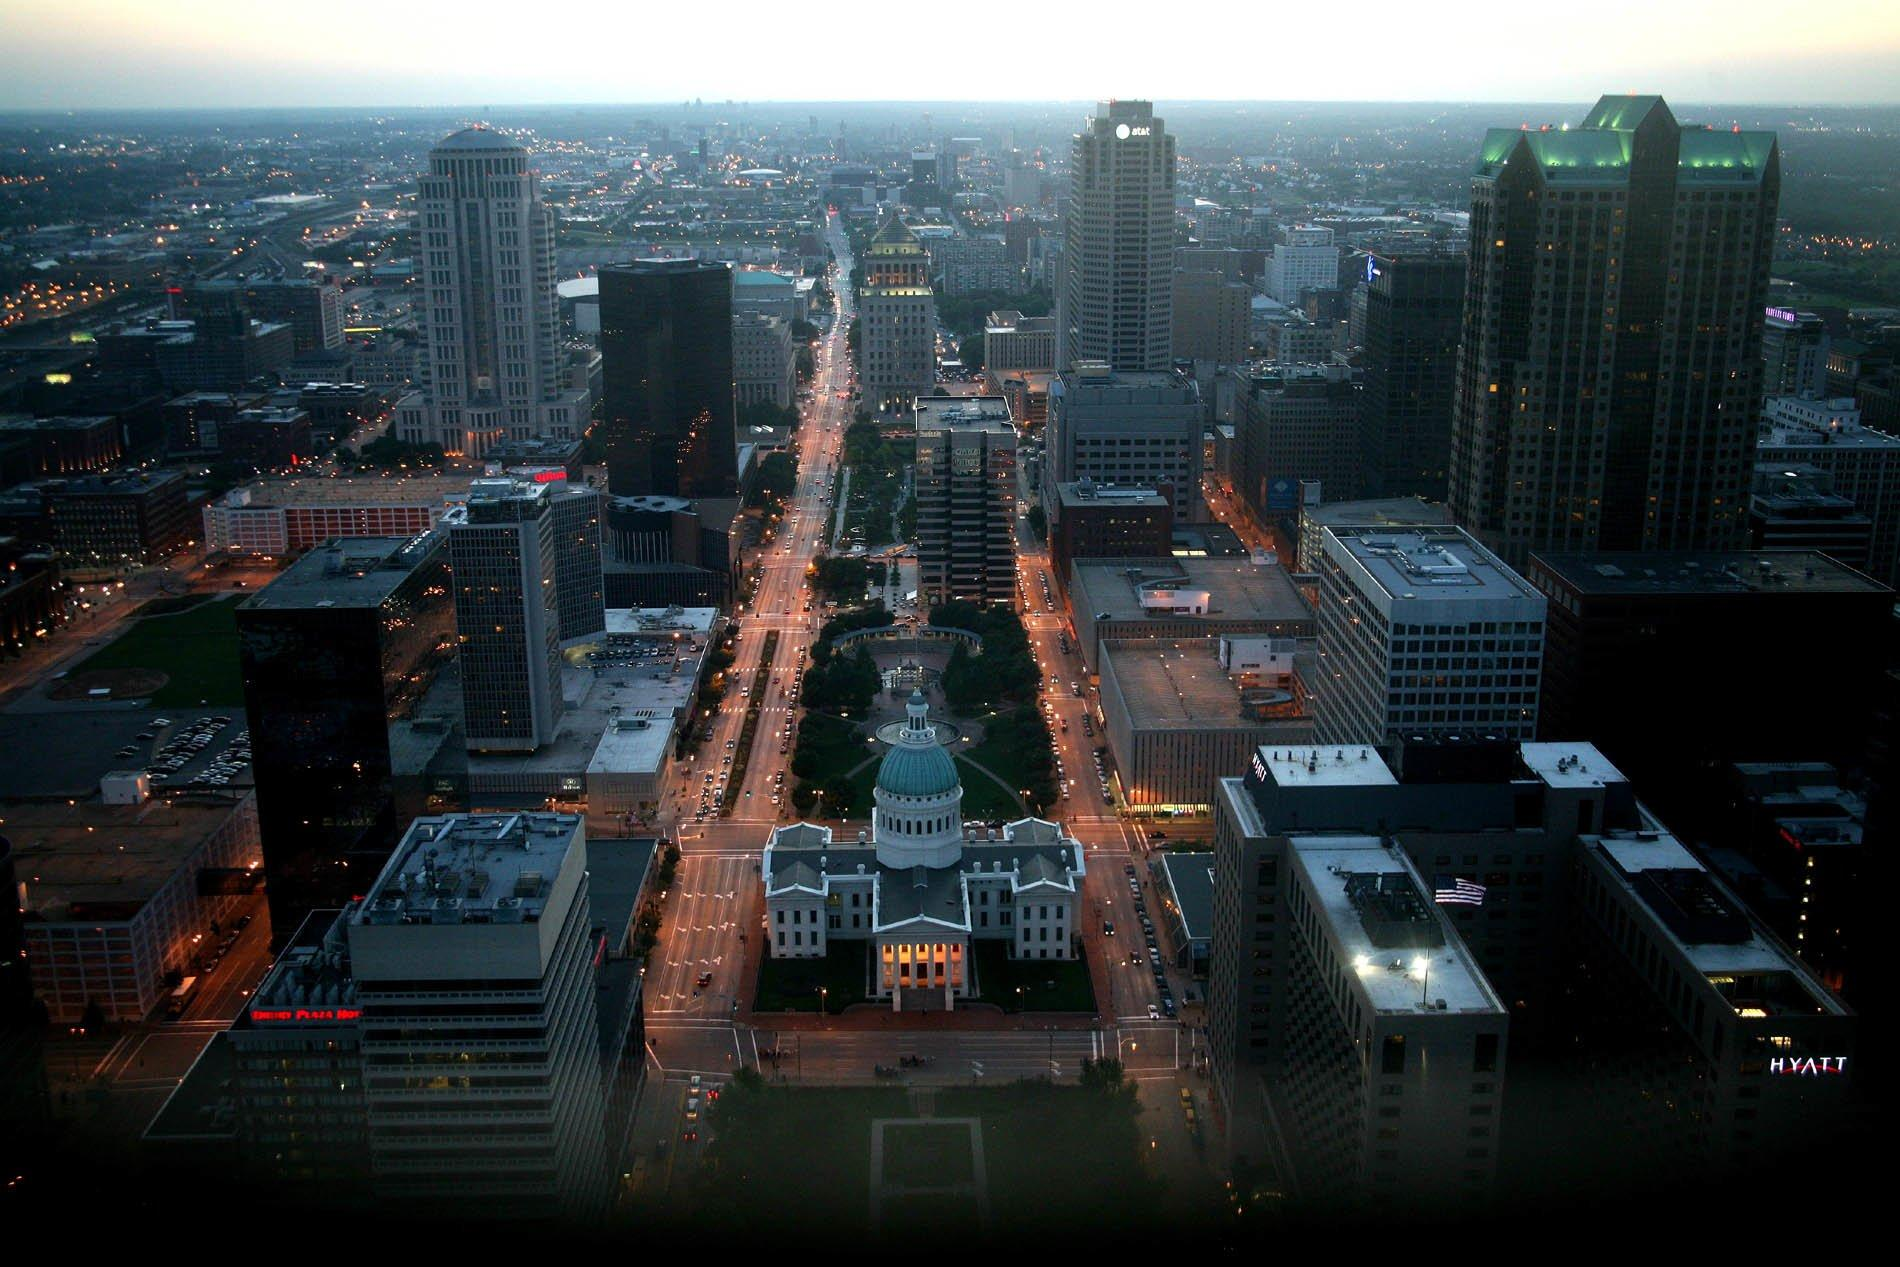 St. Louis Wallpaper and Background Image | 1900x1267 | ID:284233 ...